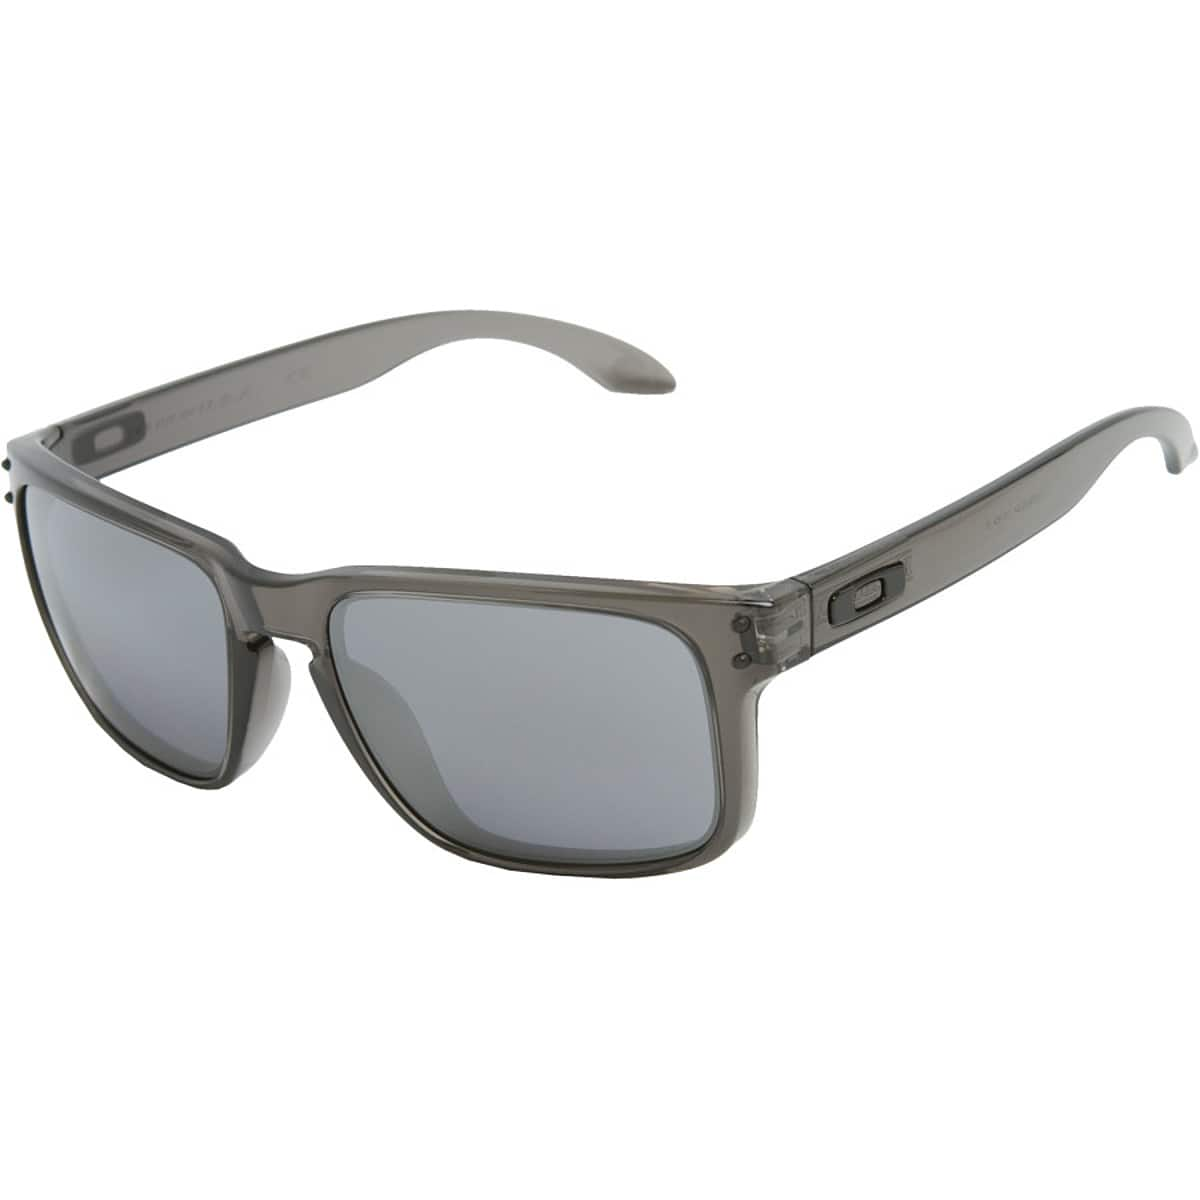 ae05d06cfaf3 Oakley Holbrook Sunglasses (Grey Smoke/Black Iridium) - Slickdeals.net